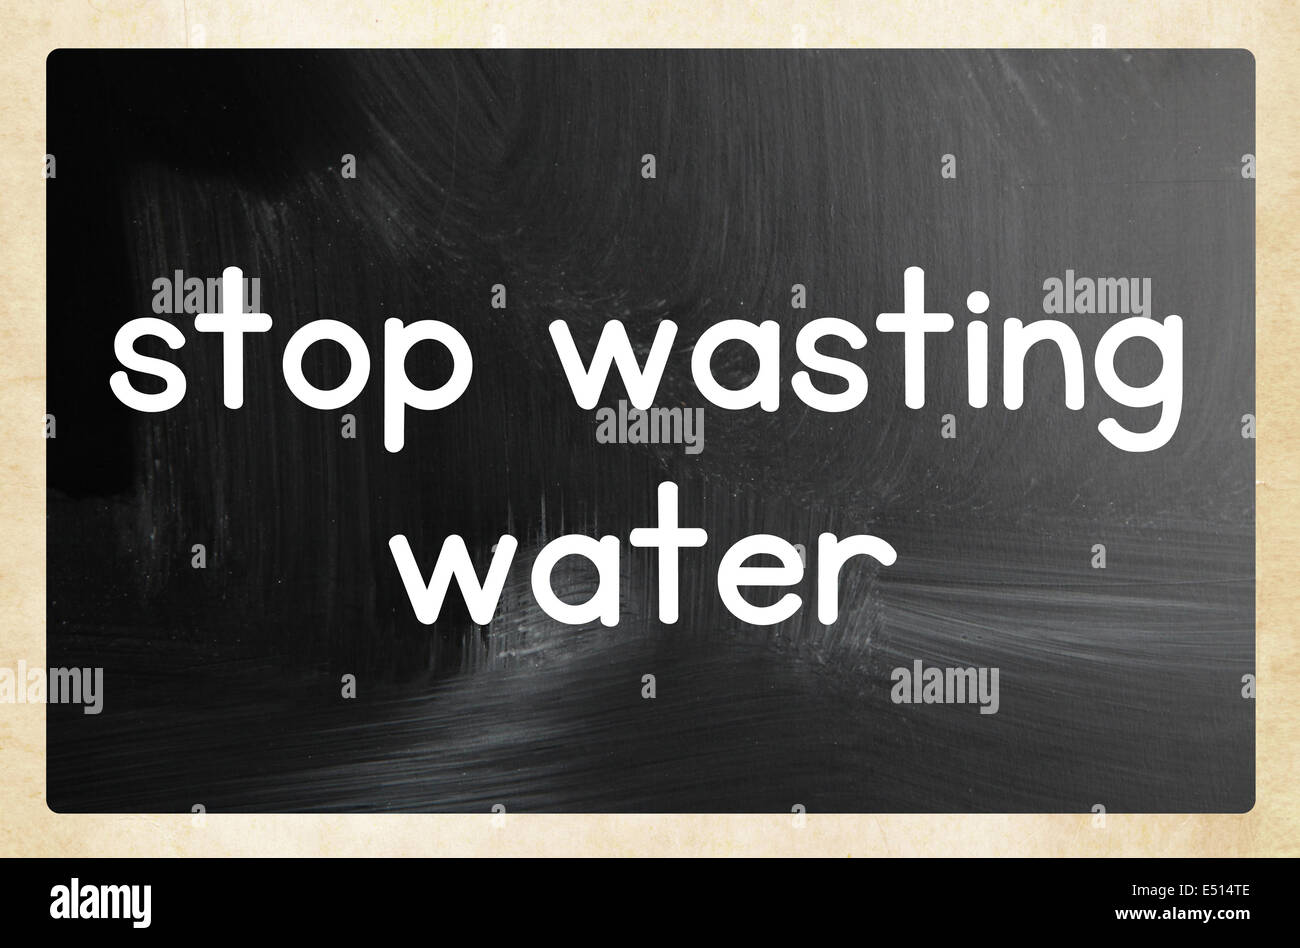 stop wasting water - Stock Image